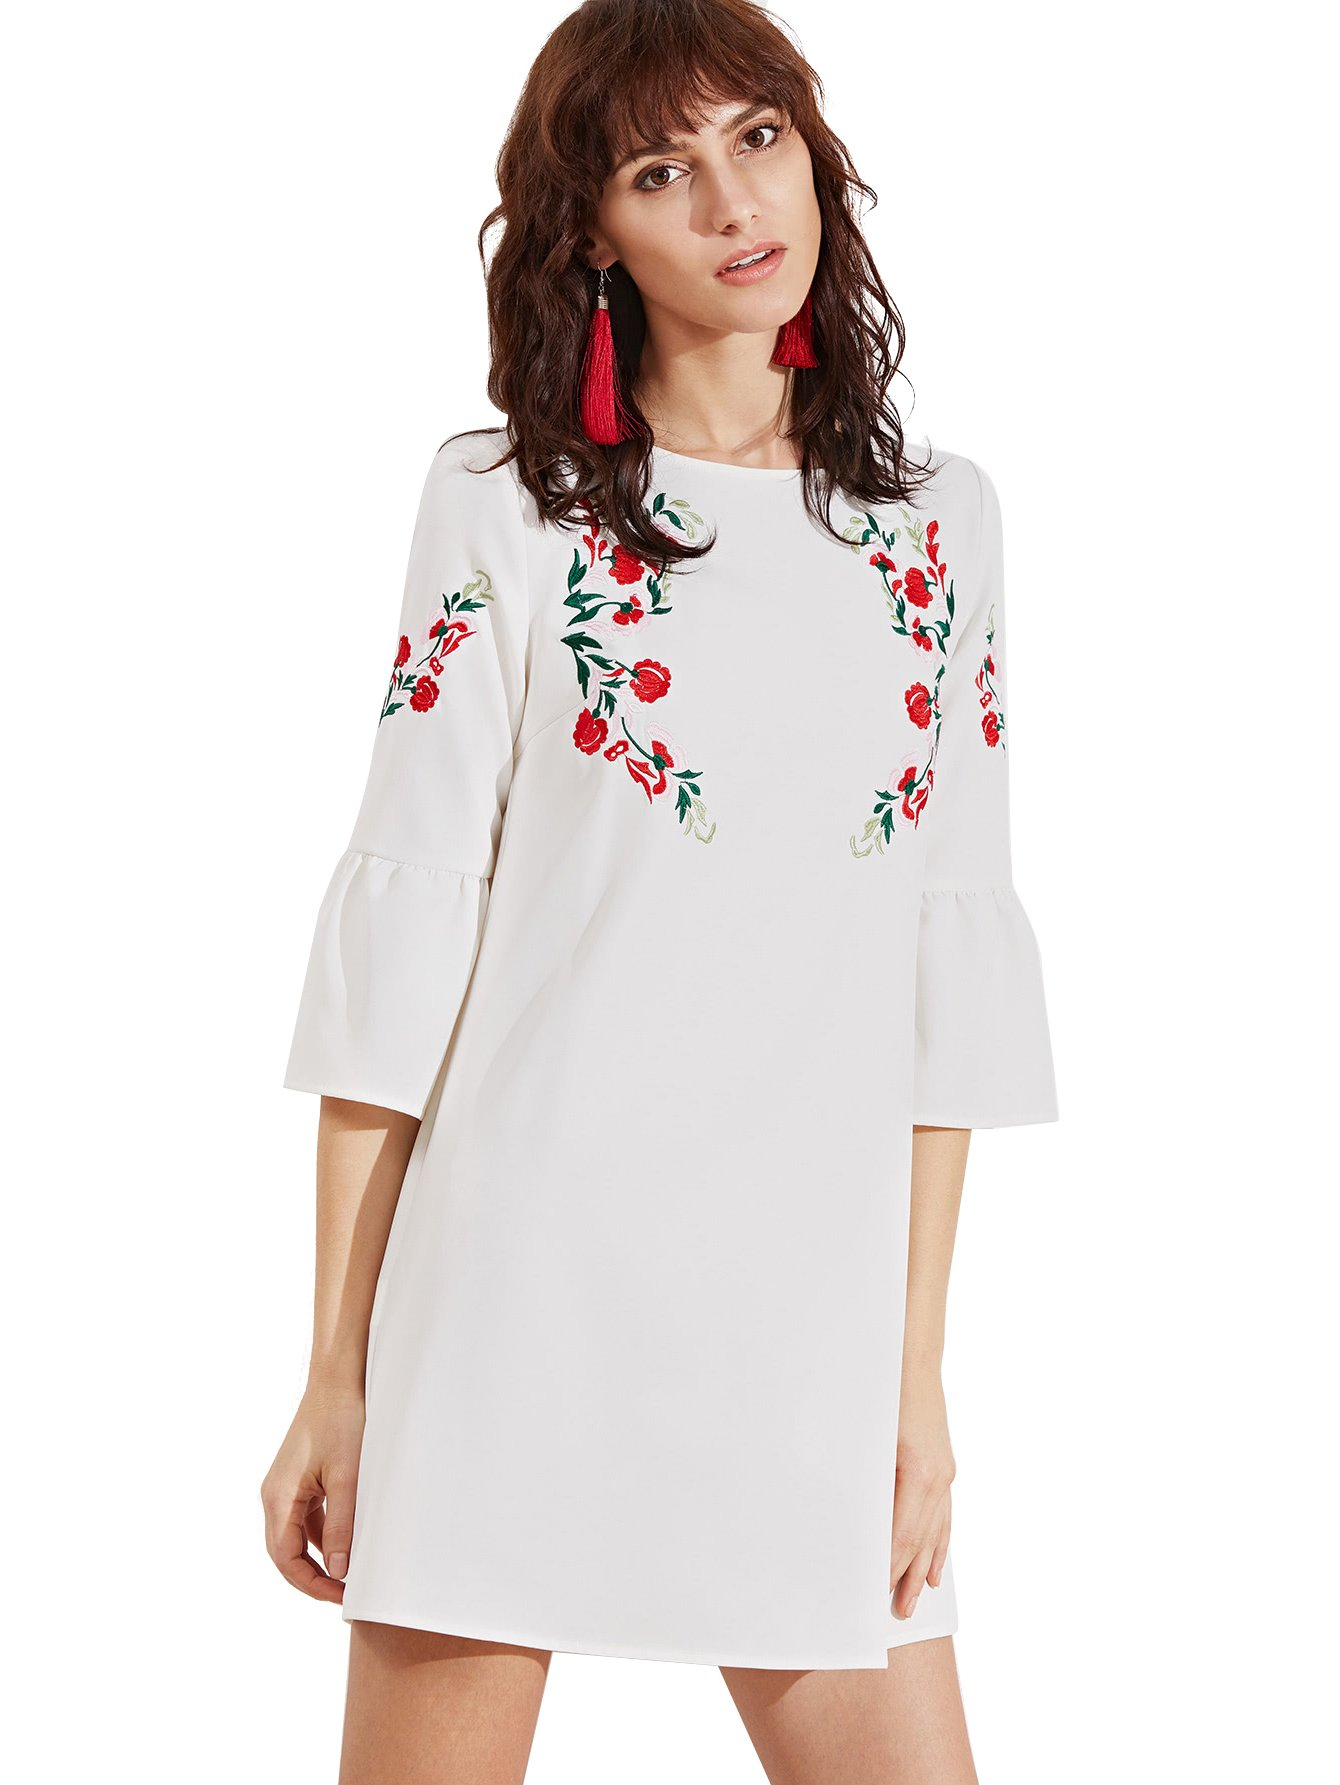 Floerns Women's Bell Sleeve Embroidered Tunic Dress Small White